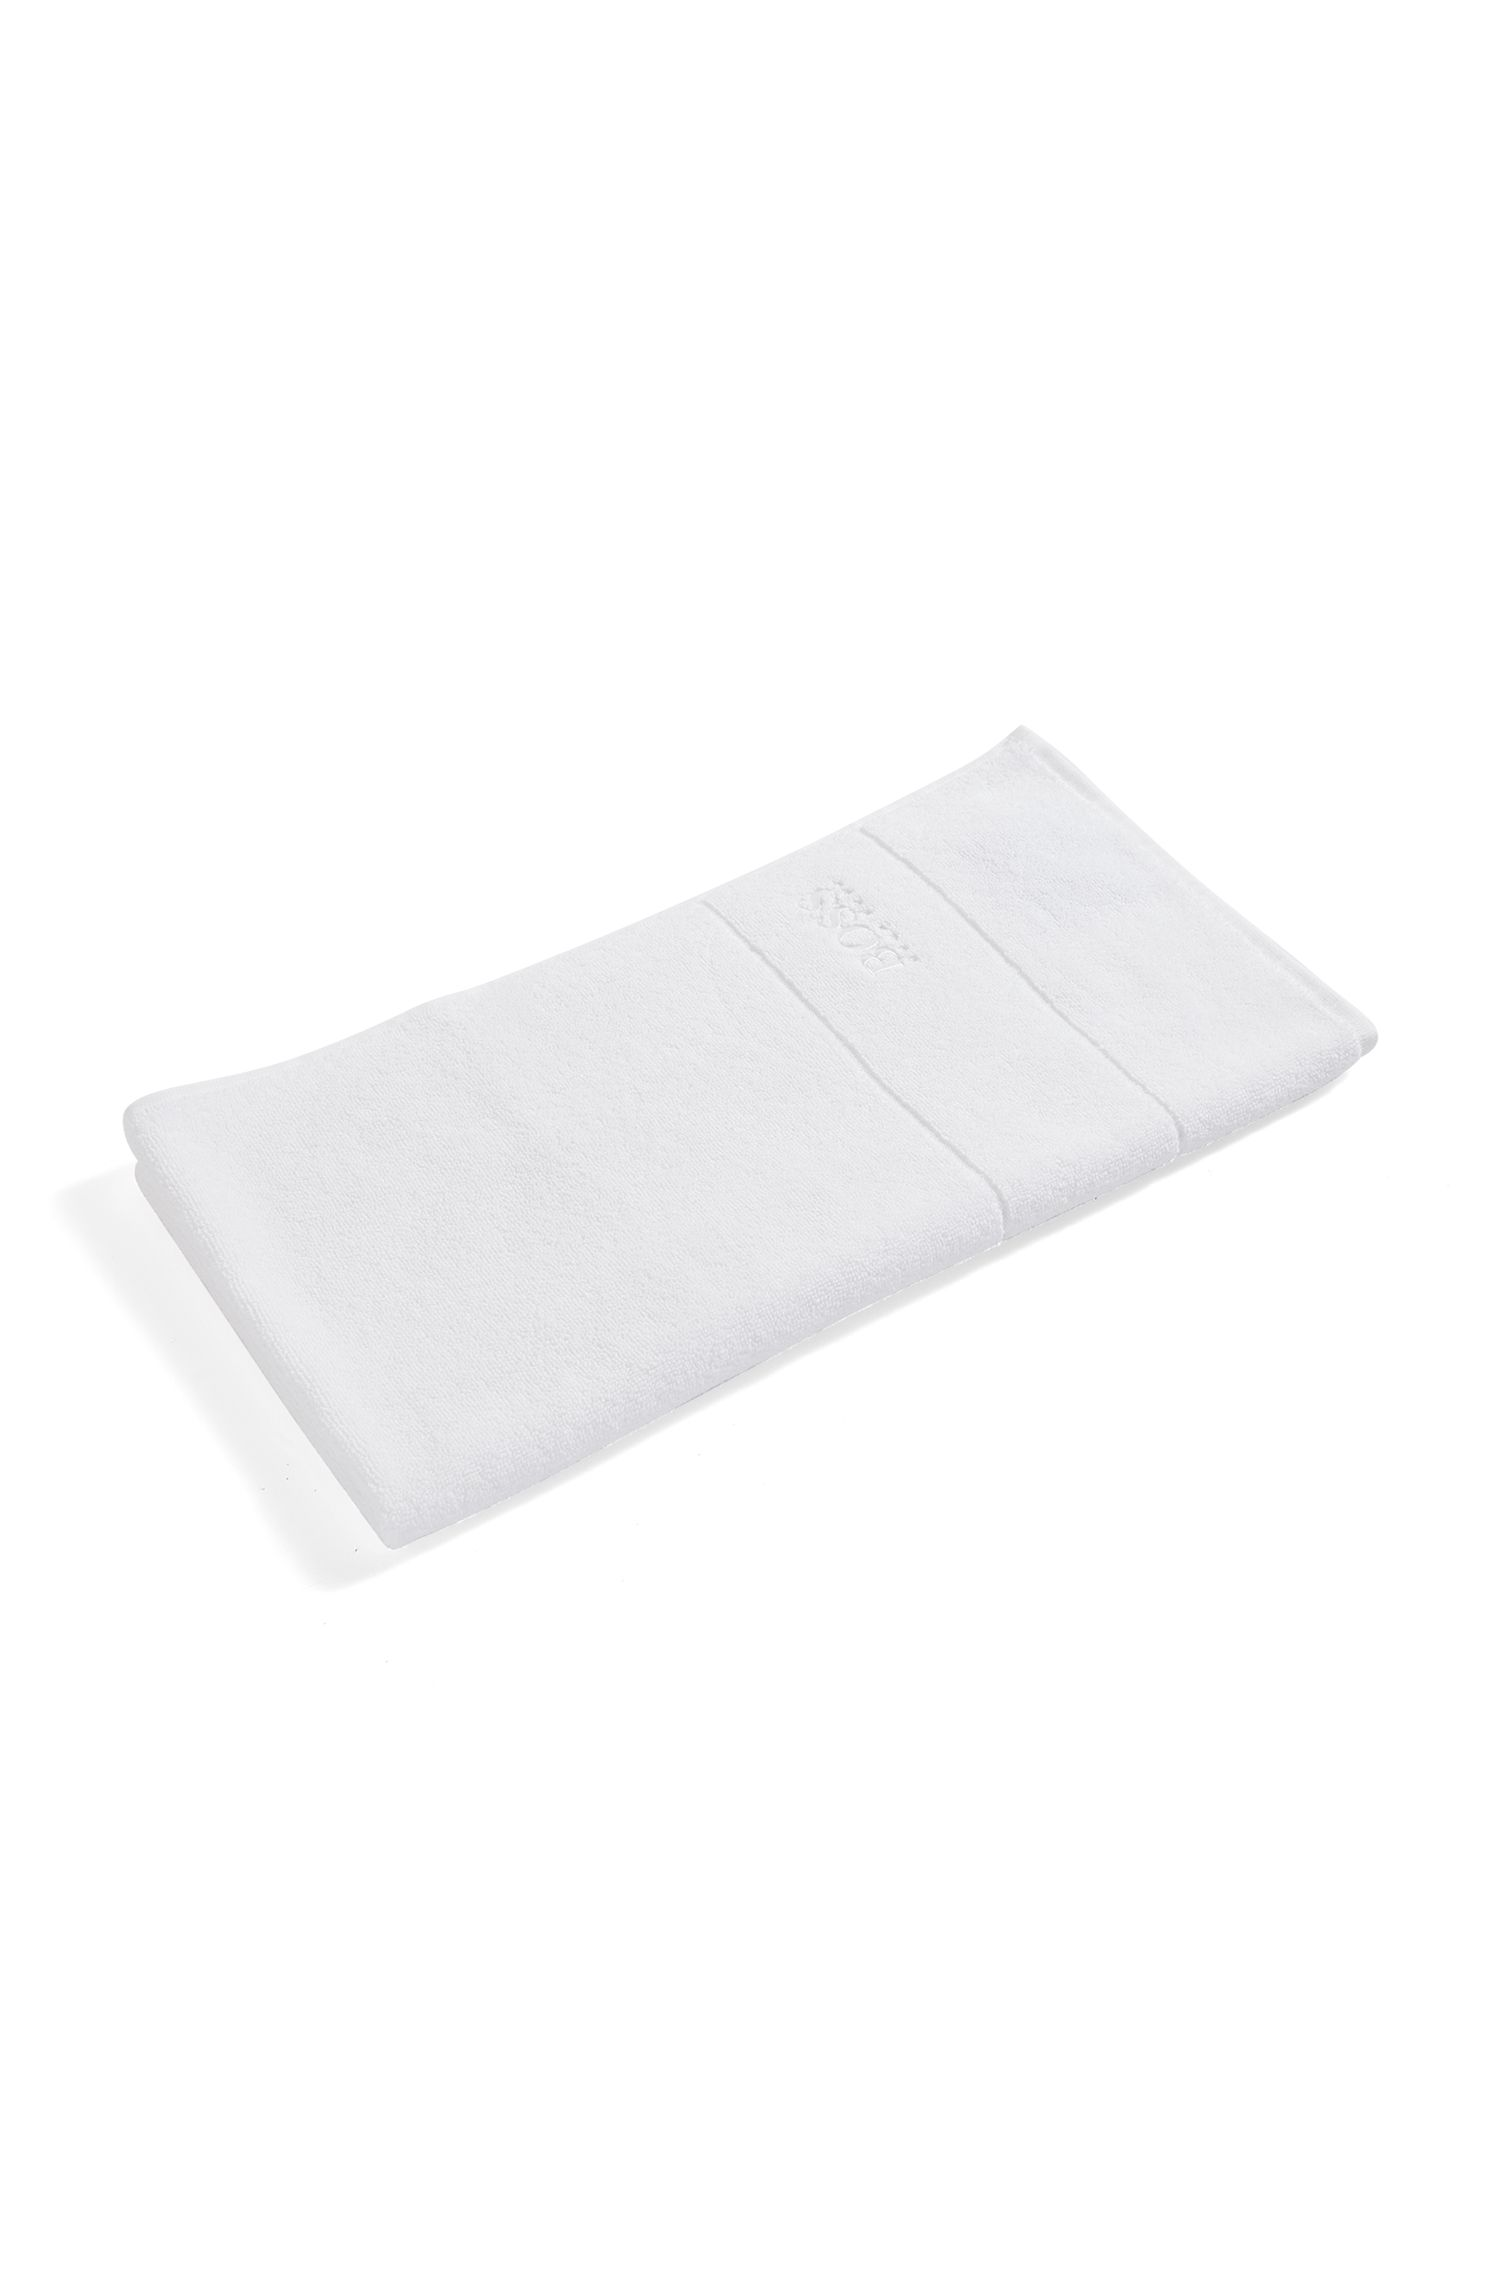 Finest Egyptian cotton hand towel with logo border, White